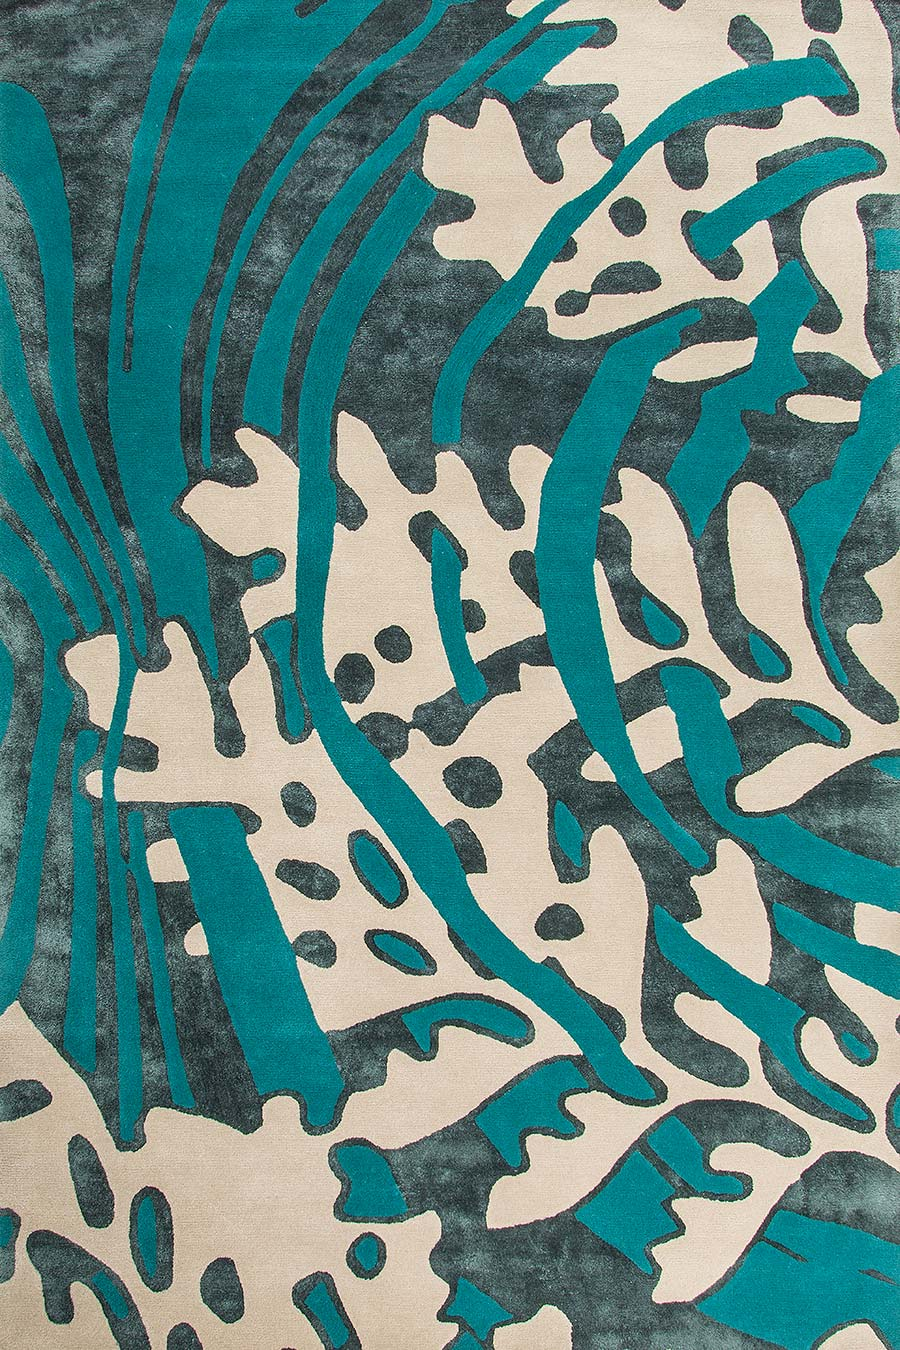 Overhead view of organic Interwoven Stream rug in teal colour